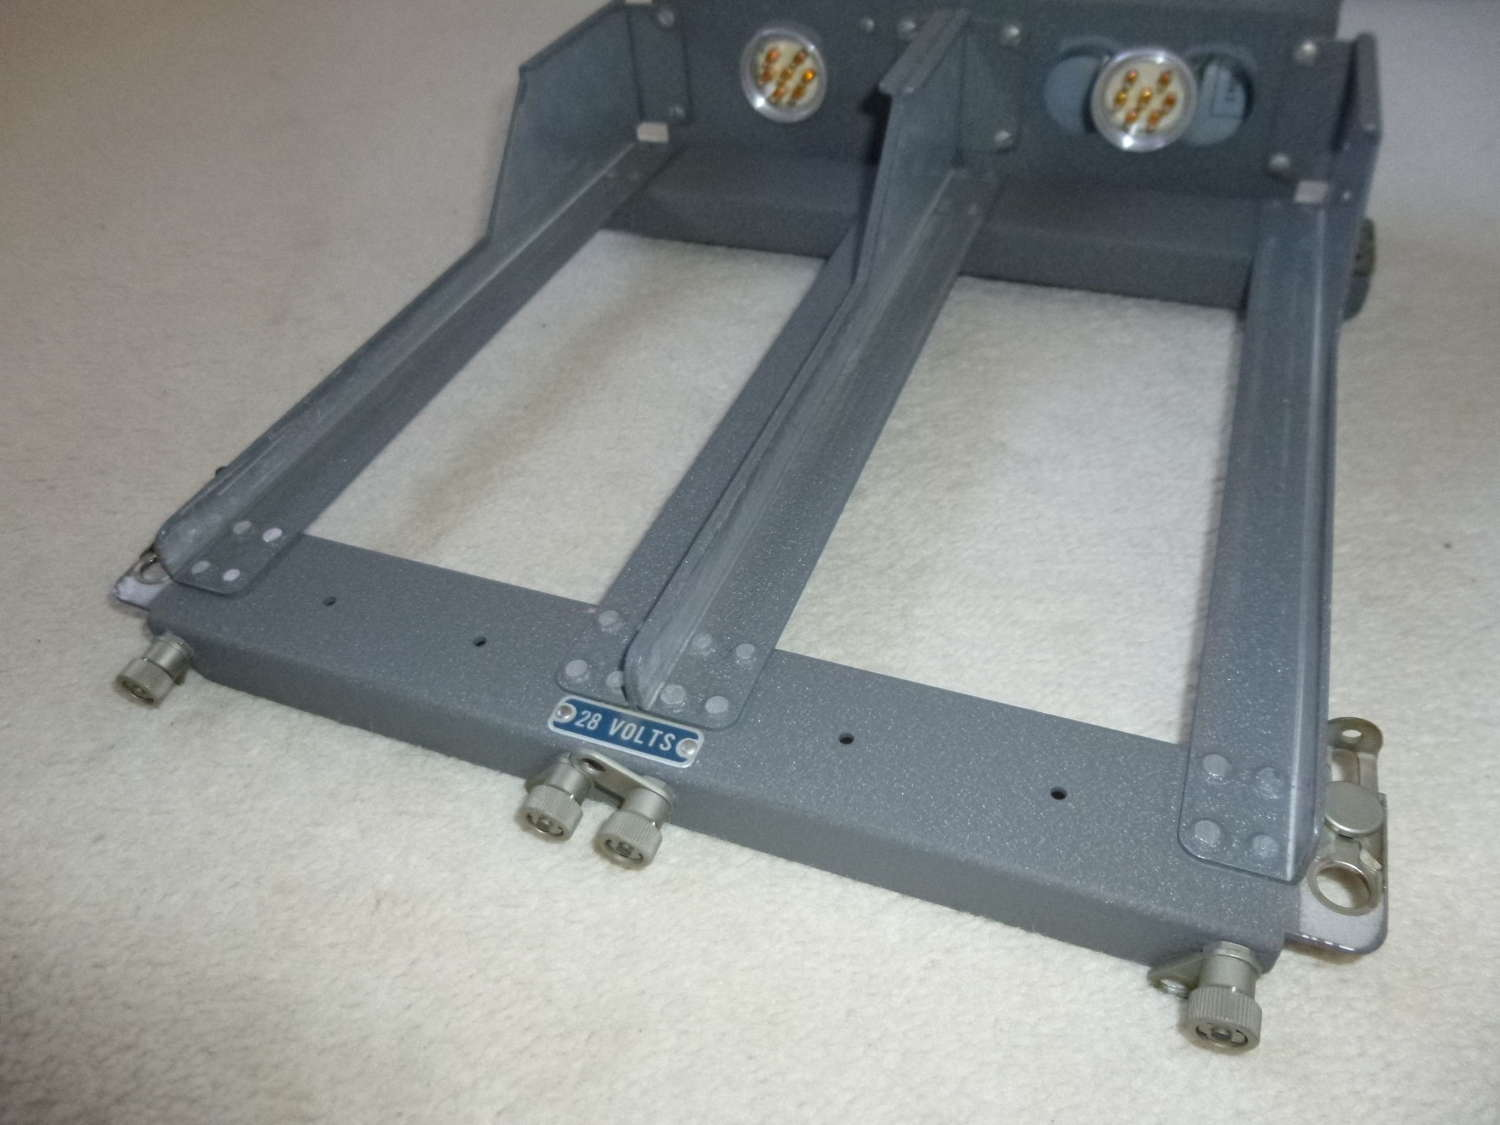 US Air Force mounting frame for two ARC-5 receivers